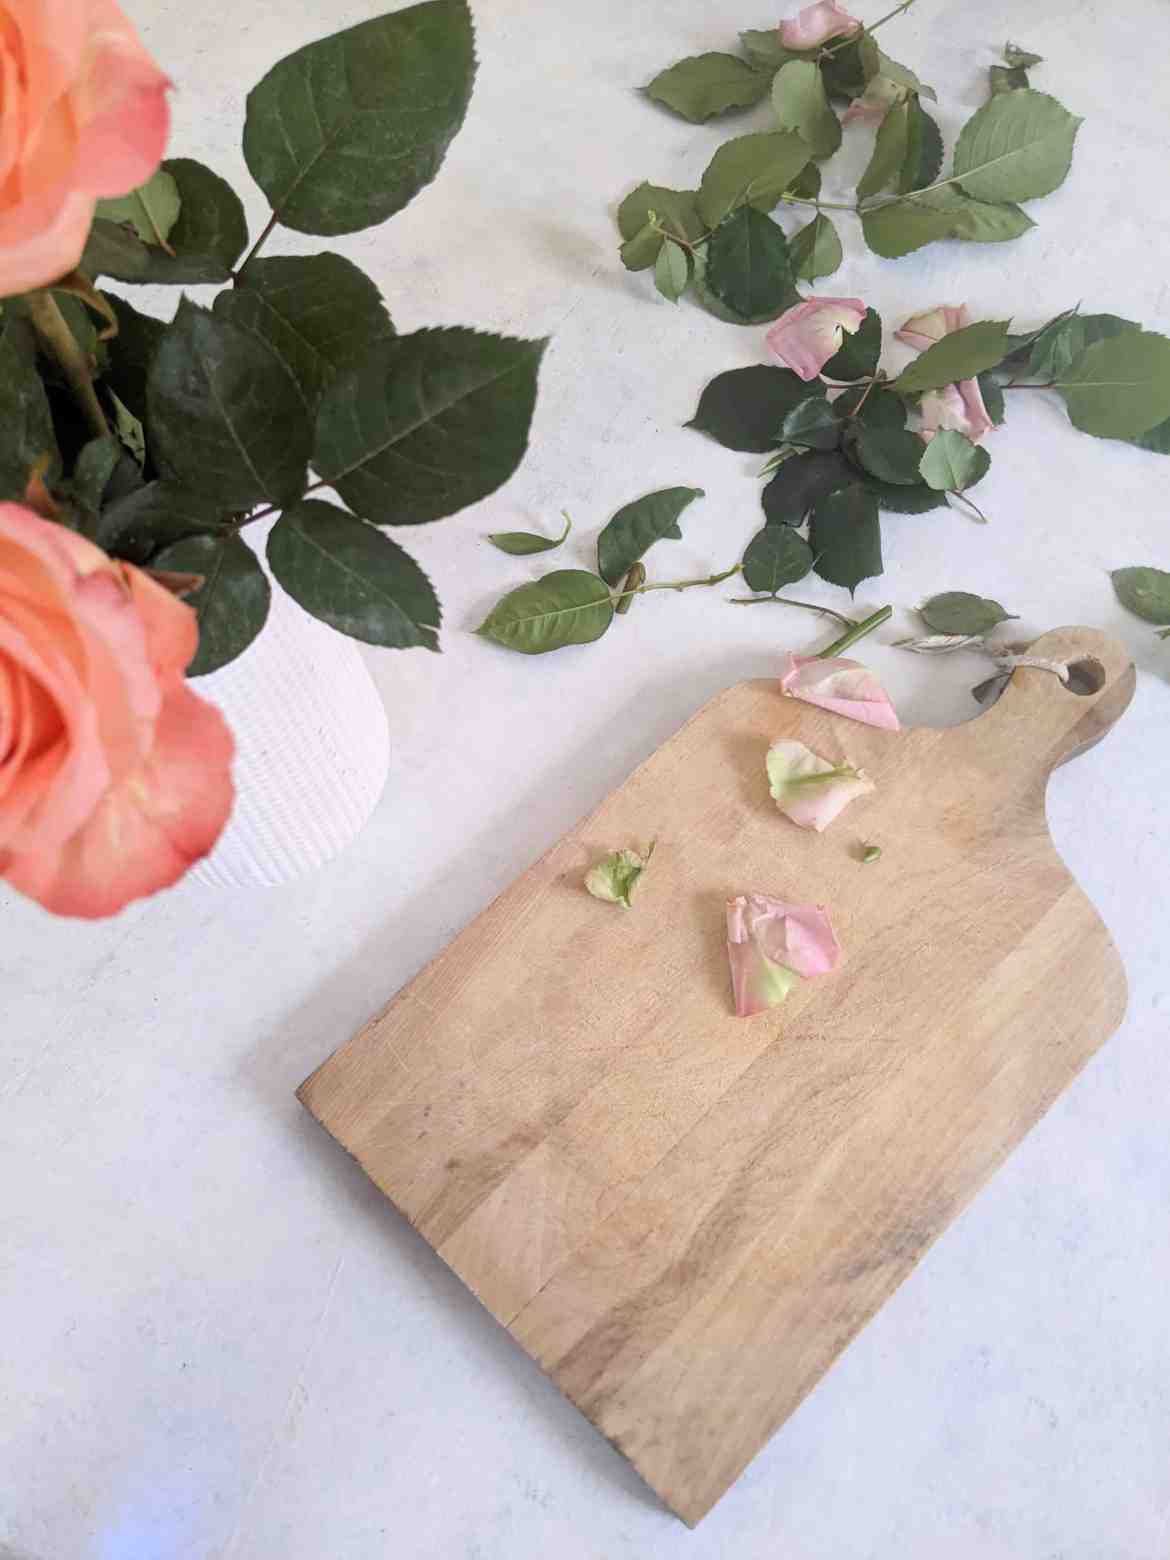 roses and cutting board